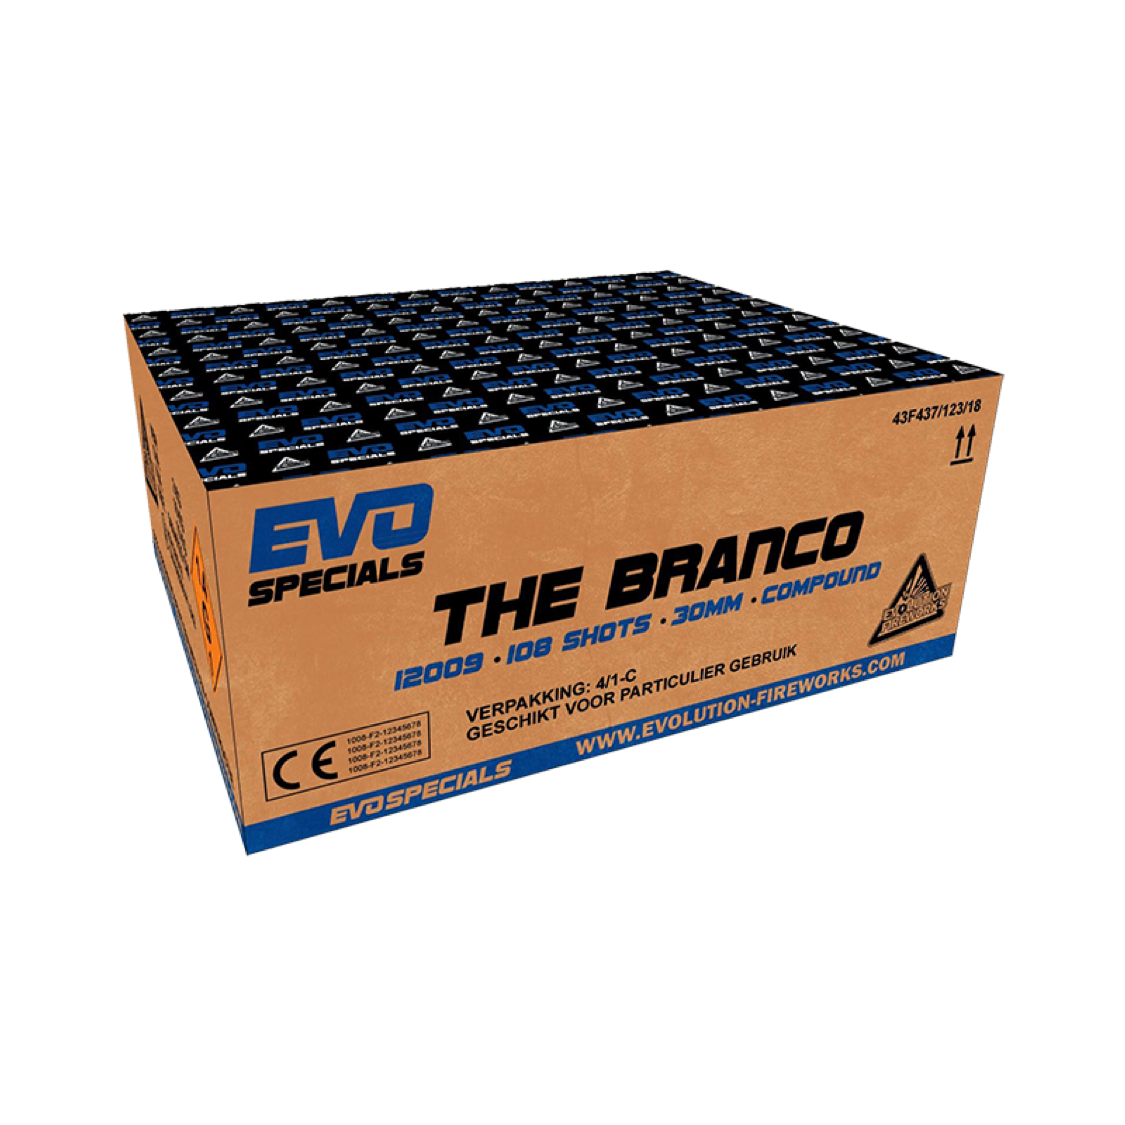 ART. 12009 THE BRANCO, 108 SHOTS. LIMITED EDITION